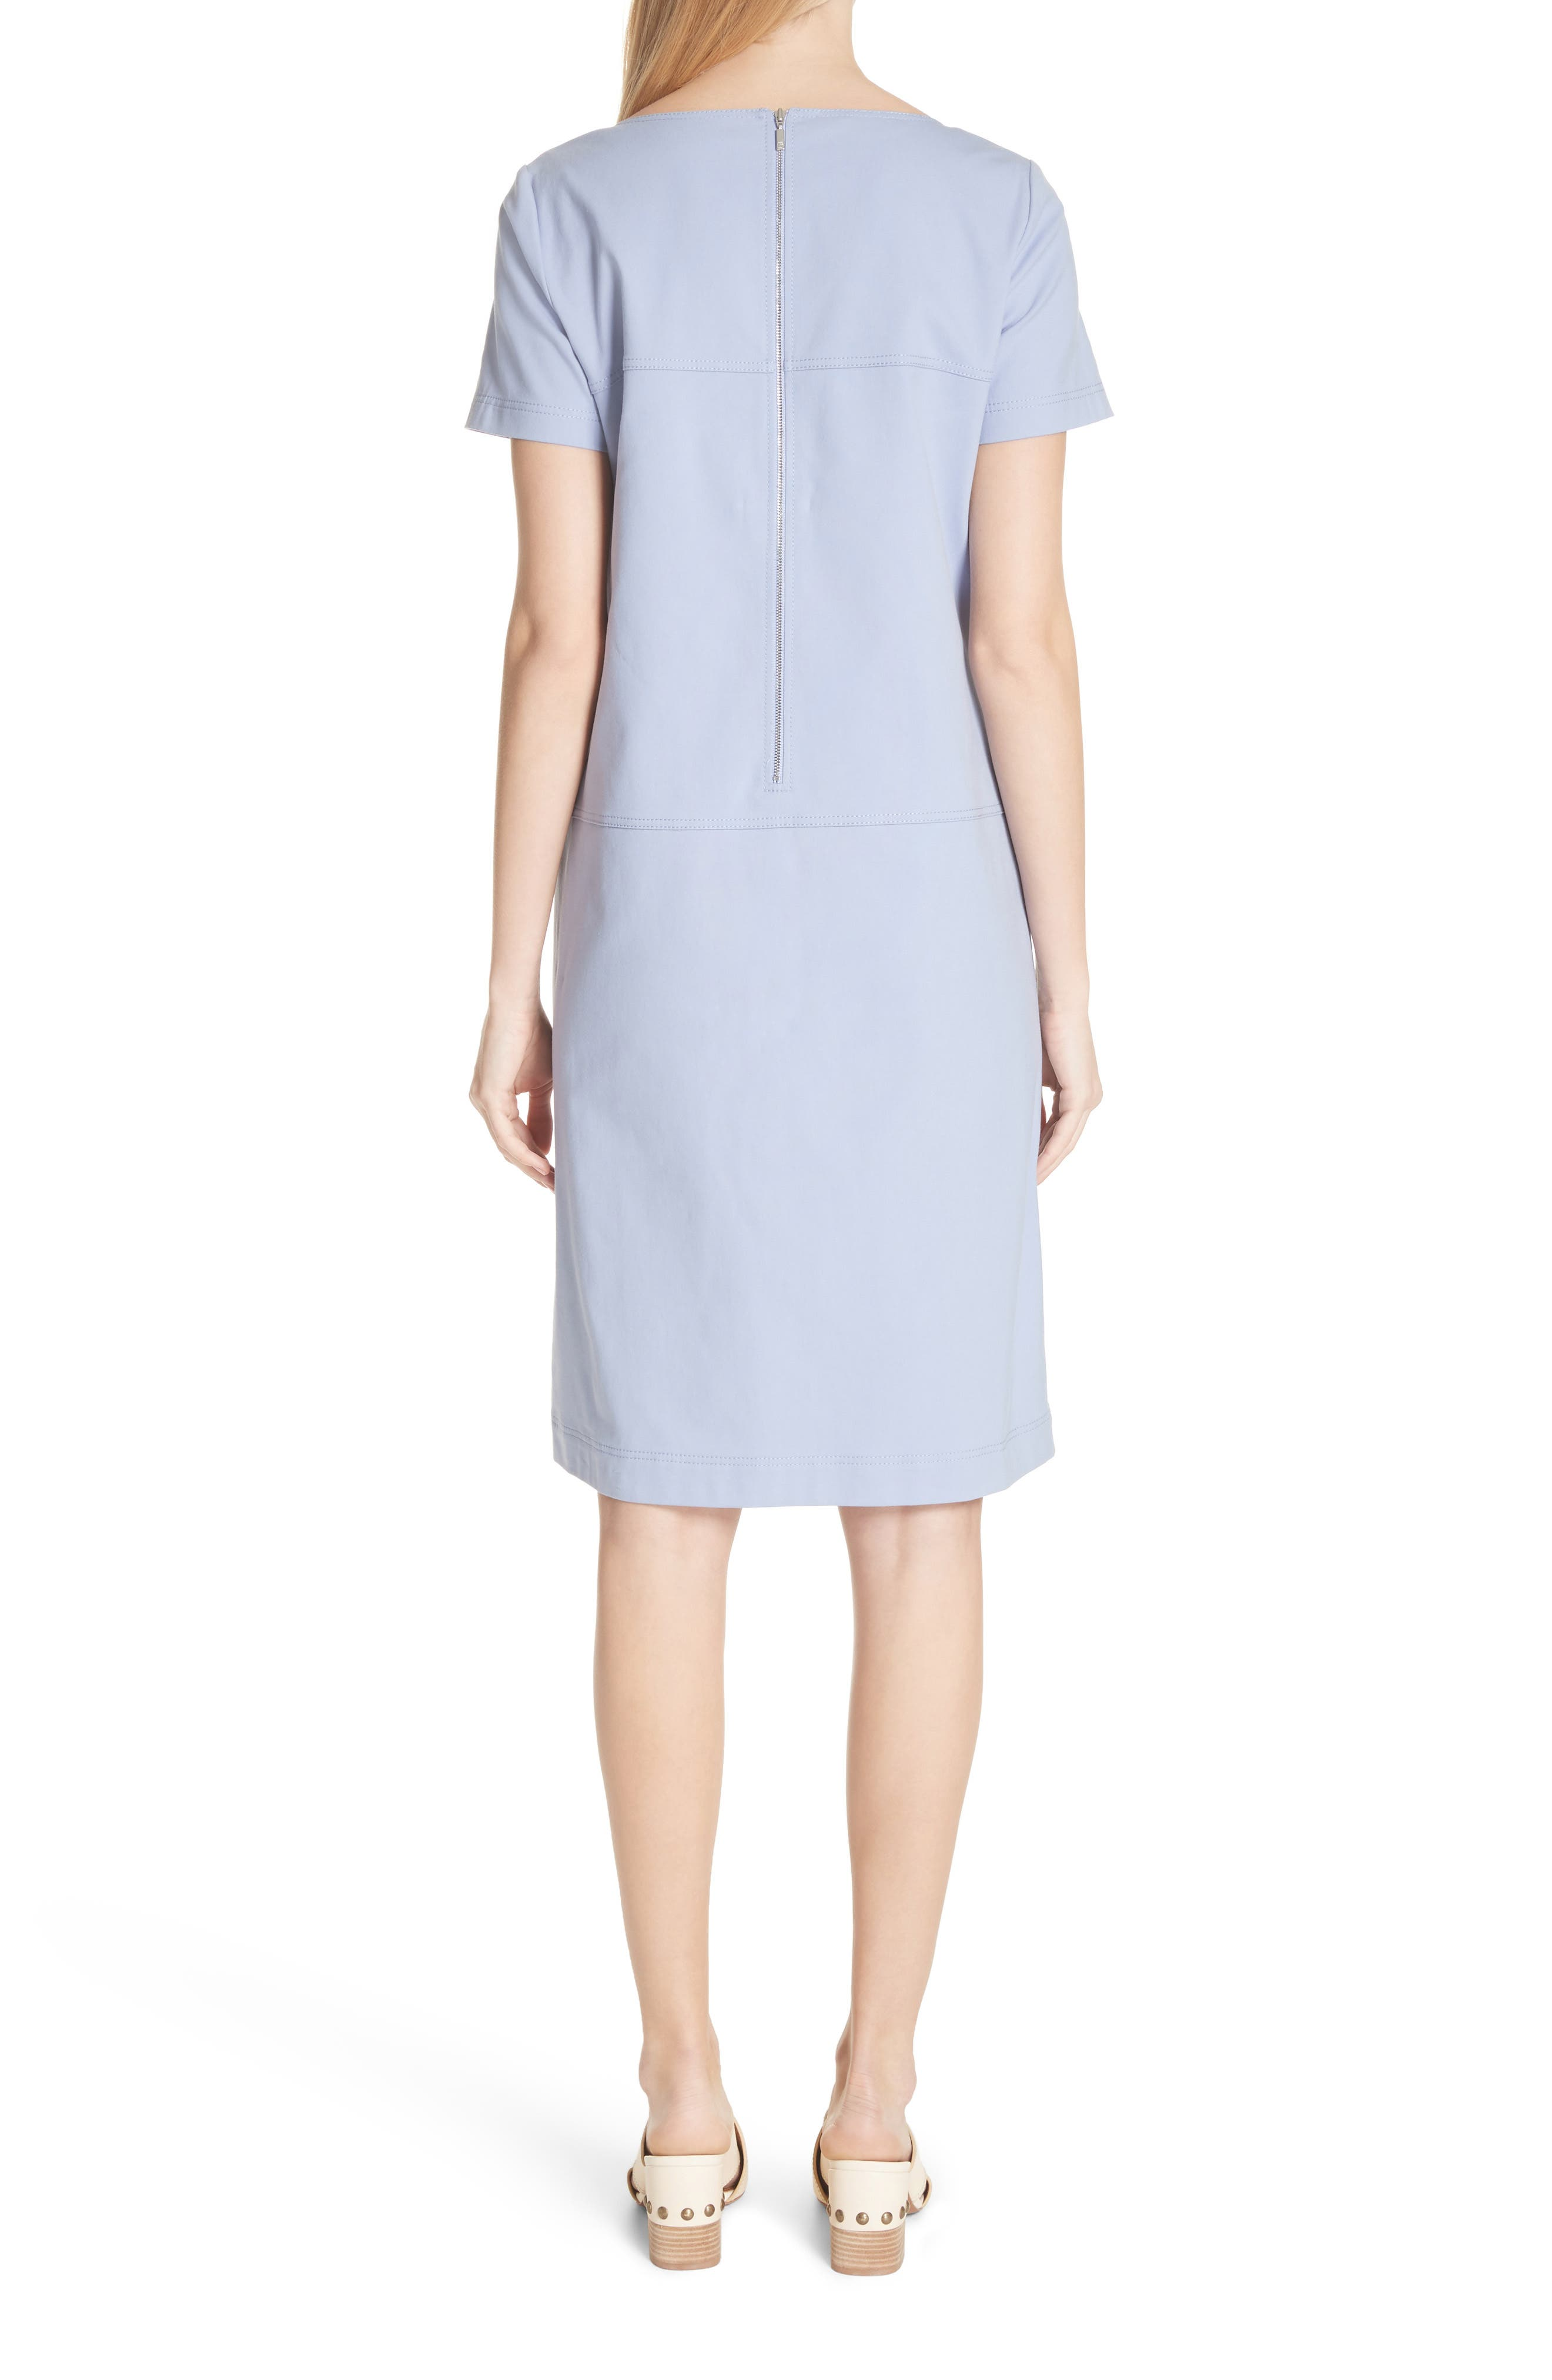 Farah Catalina Stretch Canvas Dress,                             Alternate thumbnail 2, color,                             Periwinkle